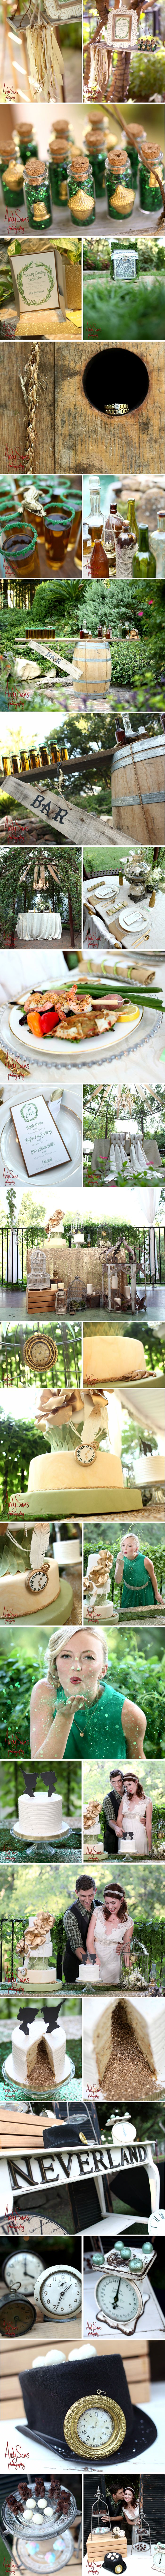 Peter Pan Styled Wedding | Part One. Some amazing ideas in this one, subtle ways to input your favourite stories into your wedding.